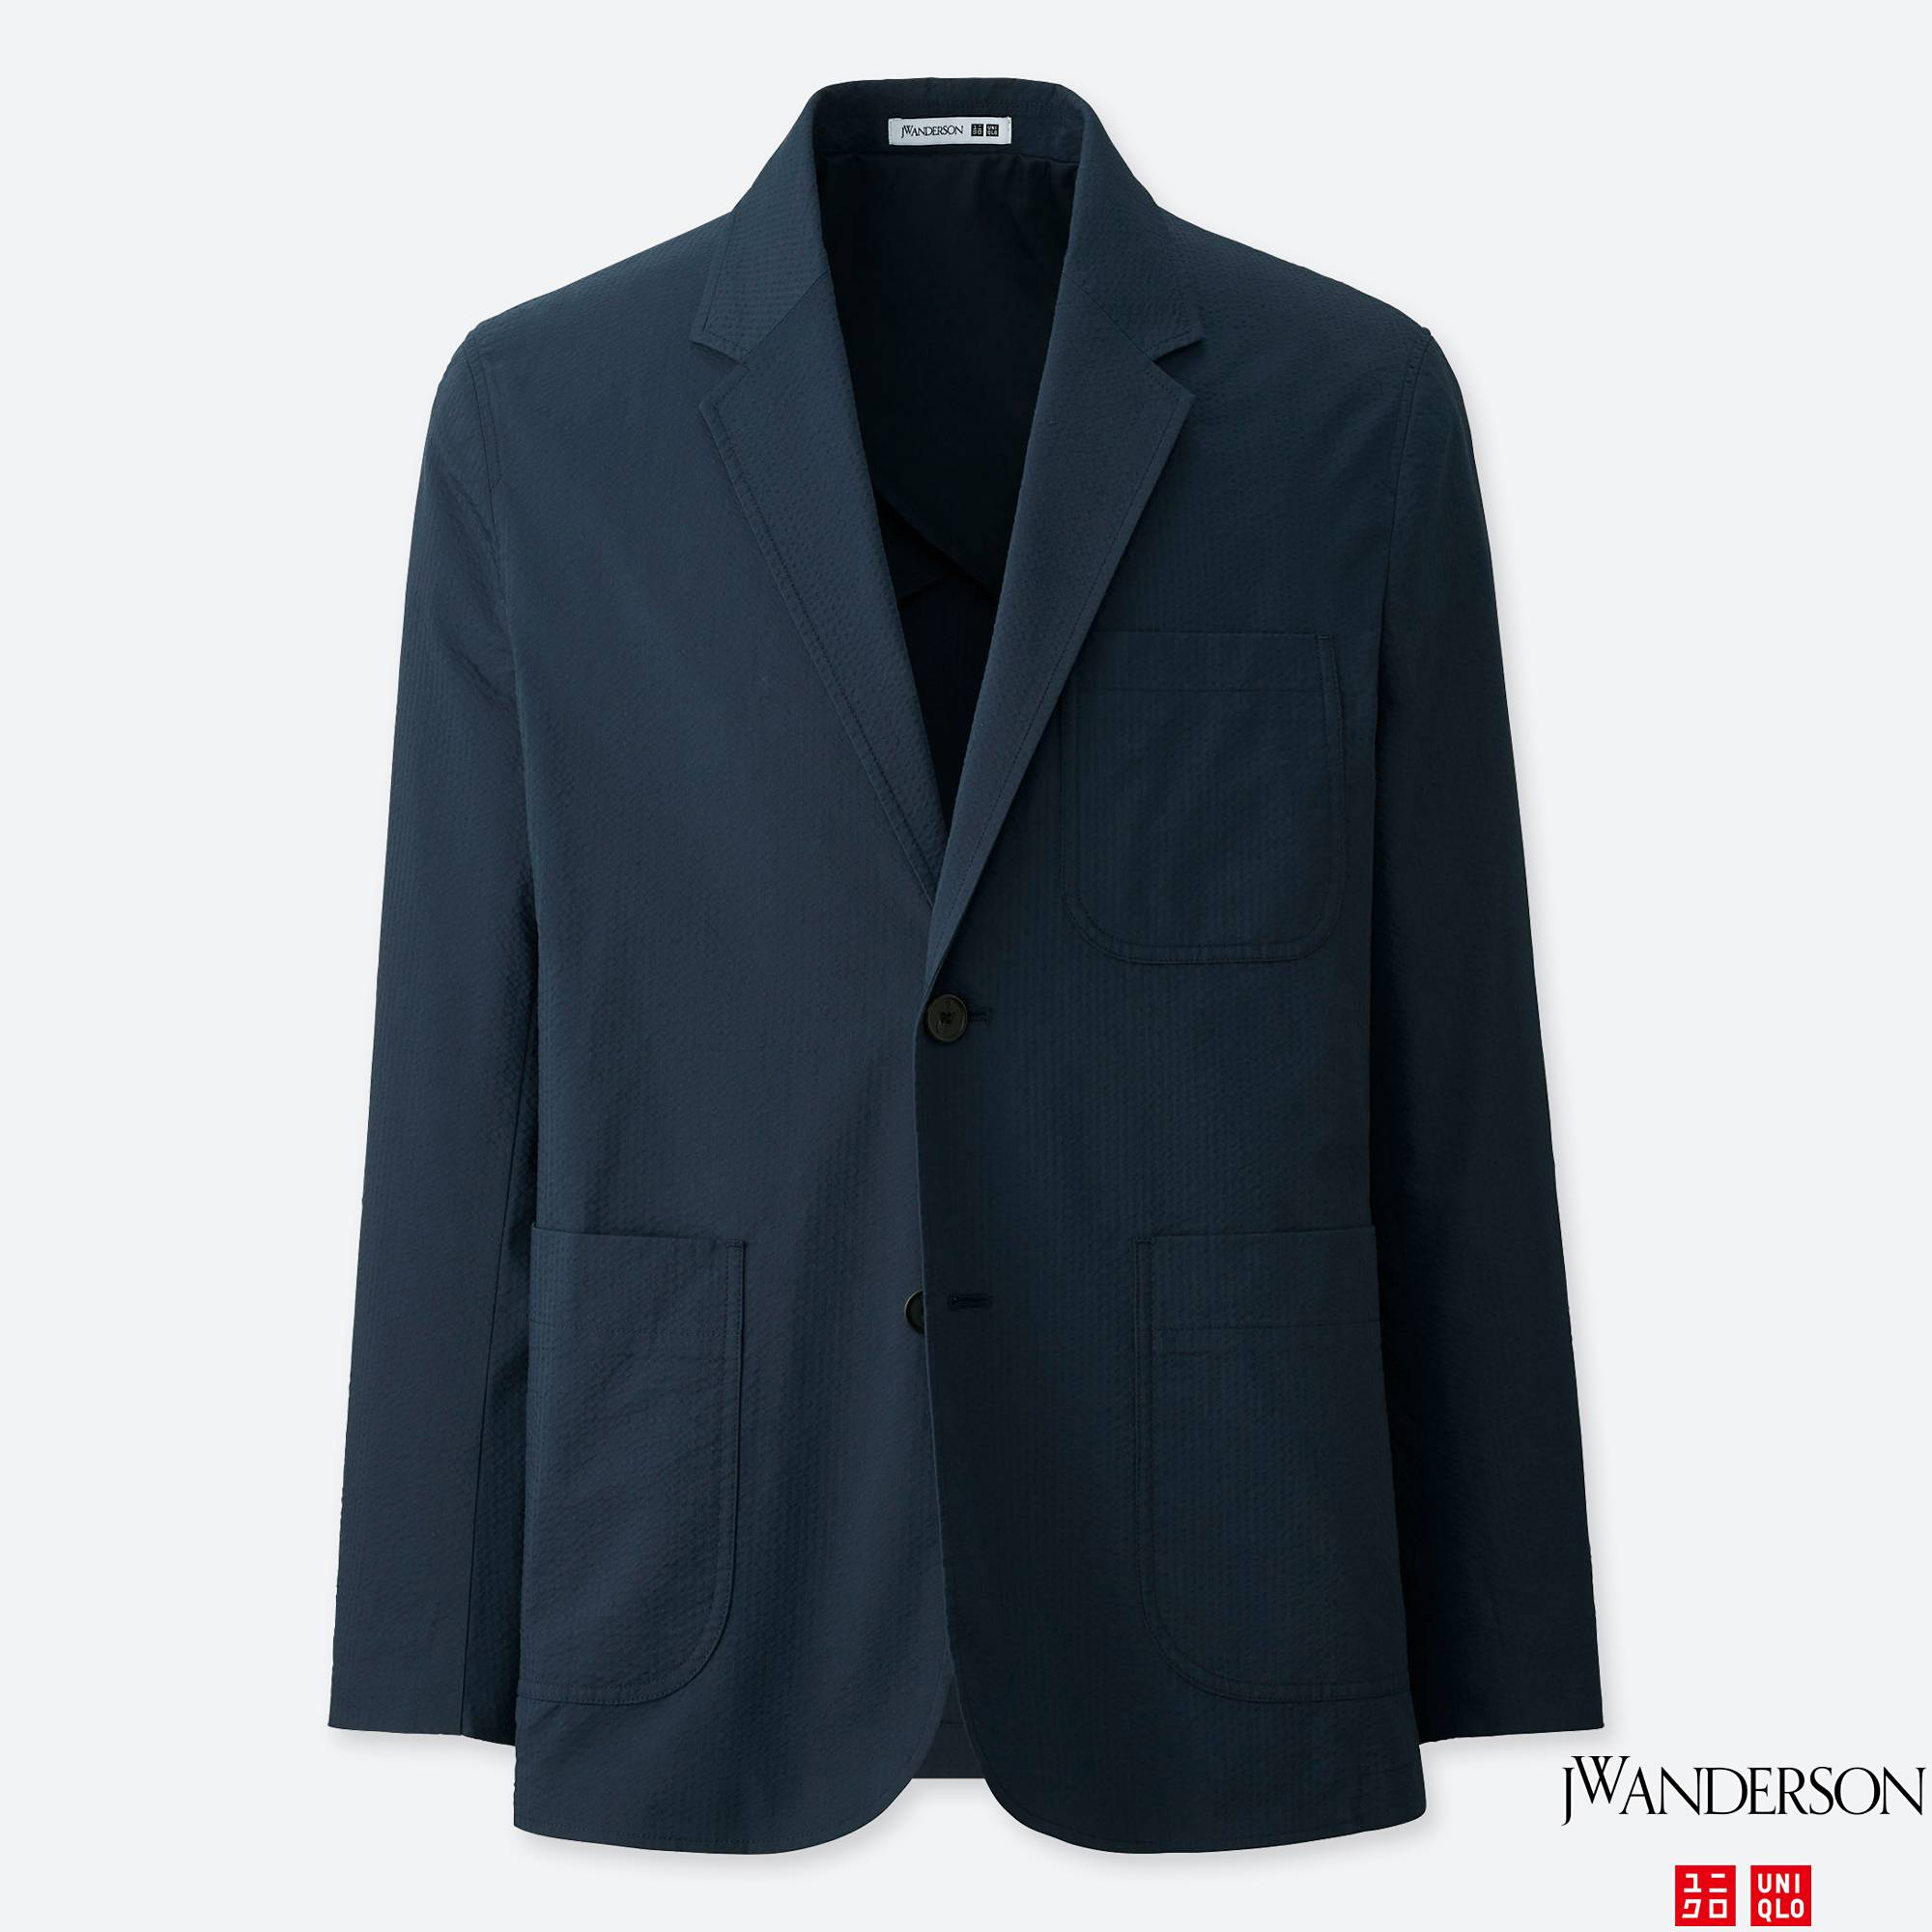 Tailored Seersucker Jacket - Uniqlo's slim fit jacket for an elevated look that stays casual.